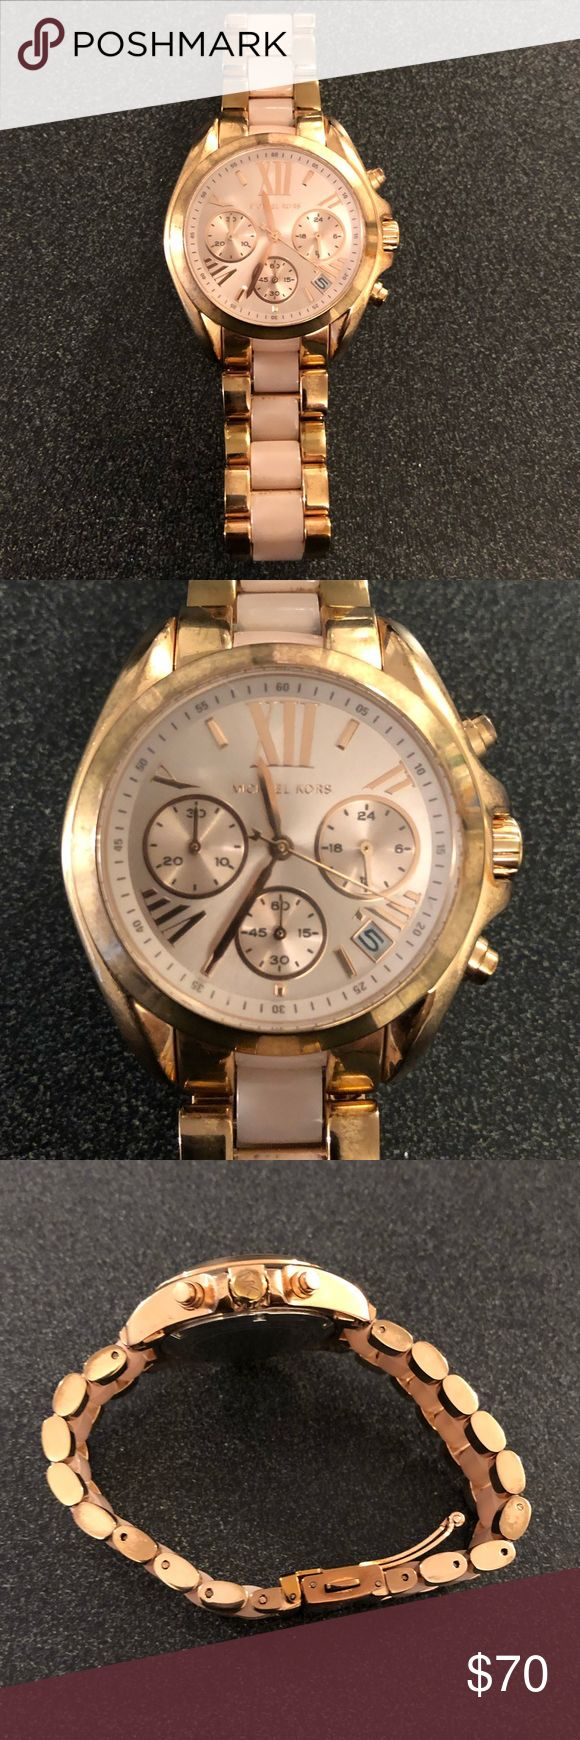 Michael Kors Bradshaw Rose Gold Tone Watch🎀 Michael kors